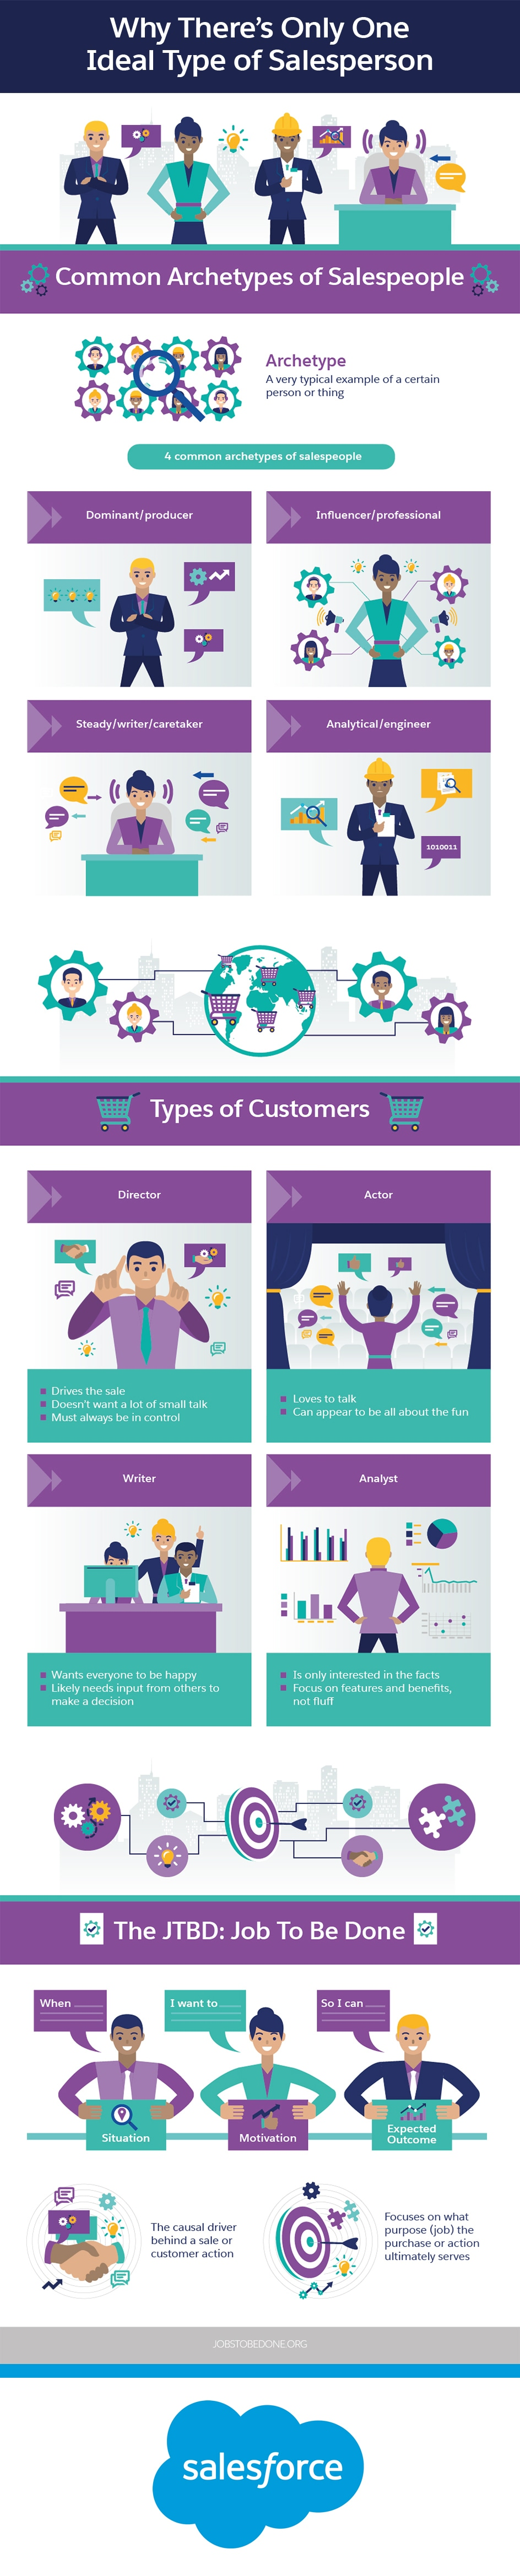 Why There's Only One Ideal Type of Salesperson Infographic